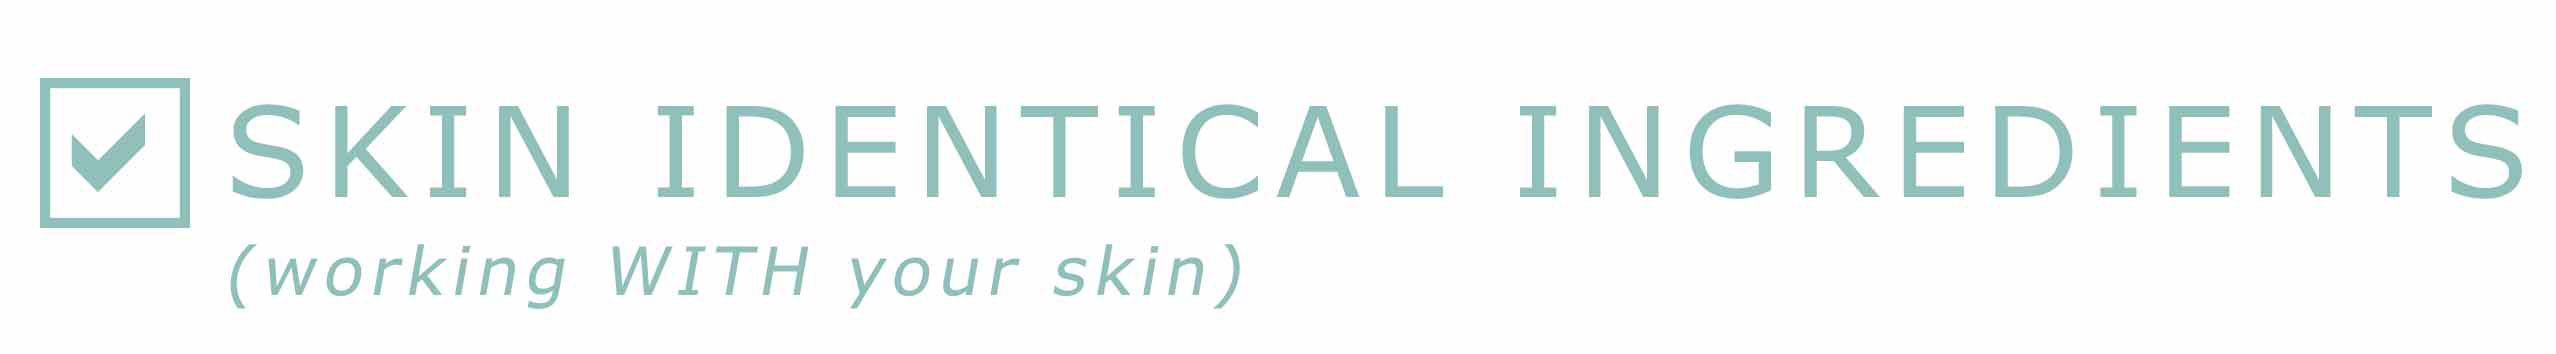 Skincare you can trust with skin identical ingredients.